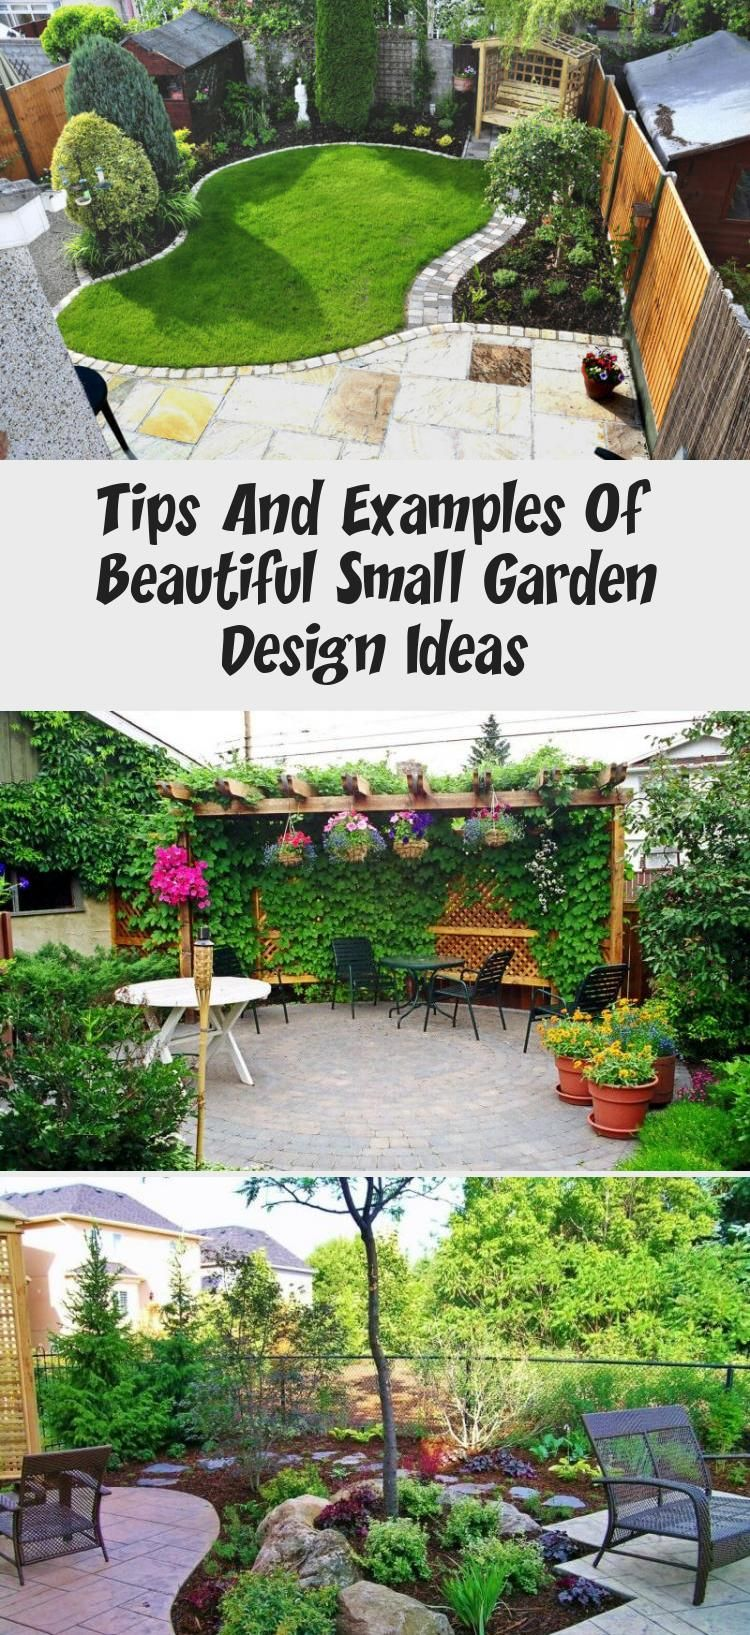 Tips And Examples Of Beautiful Small Garden Design Ideas ...